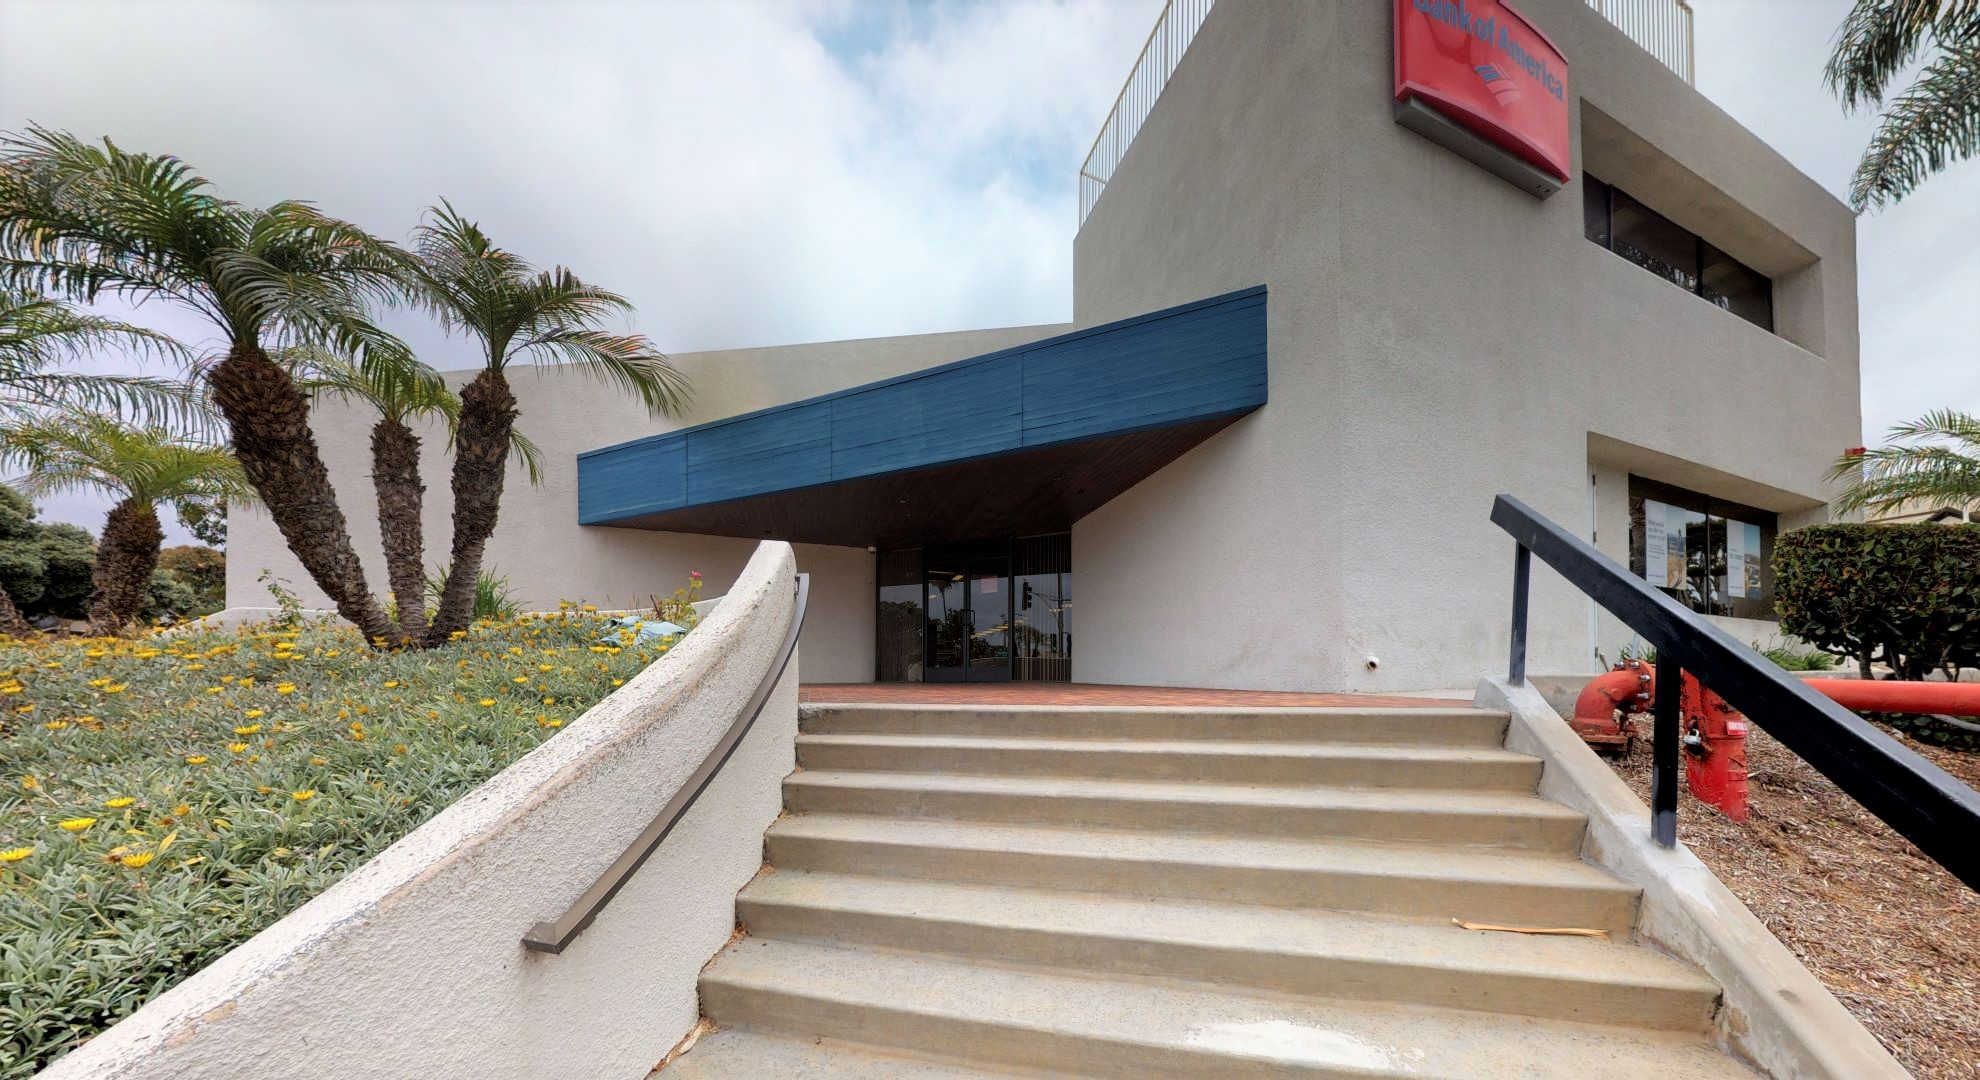 Bank of America financial center with walk-up ATM | 222 N Catalina Ave, Redondo Beach, CA 90277